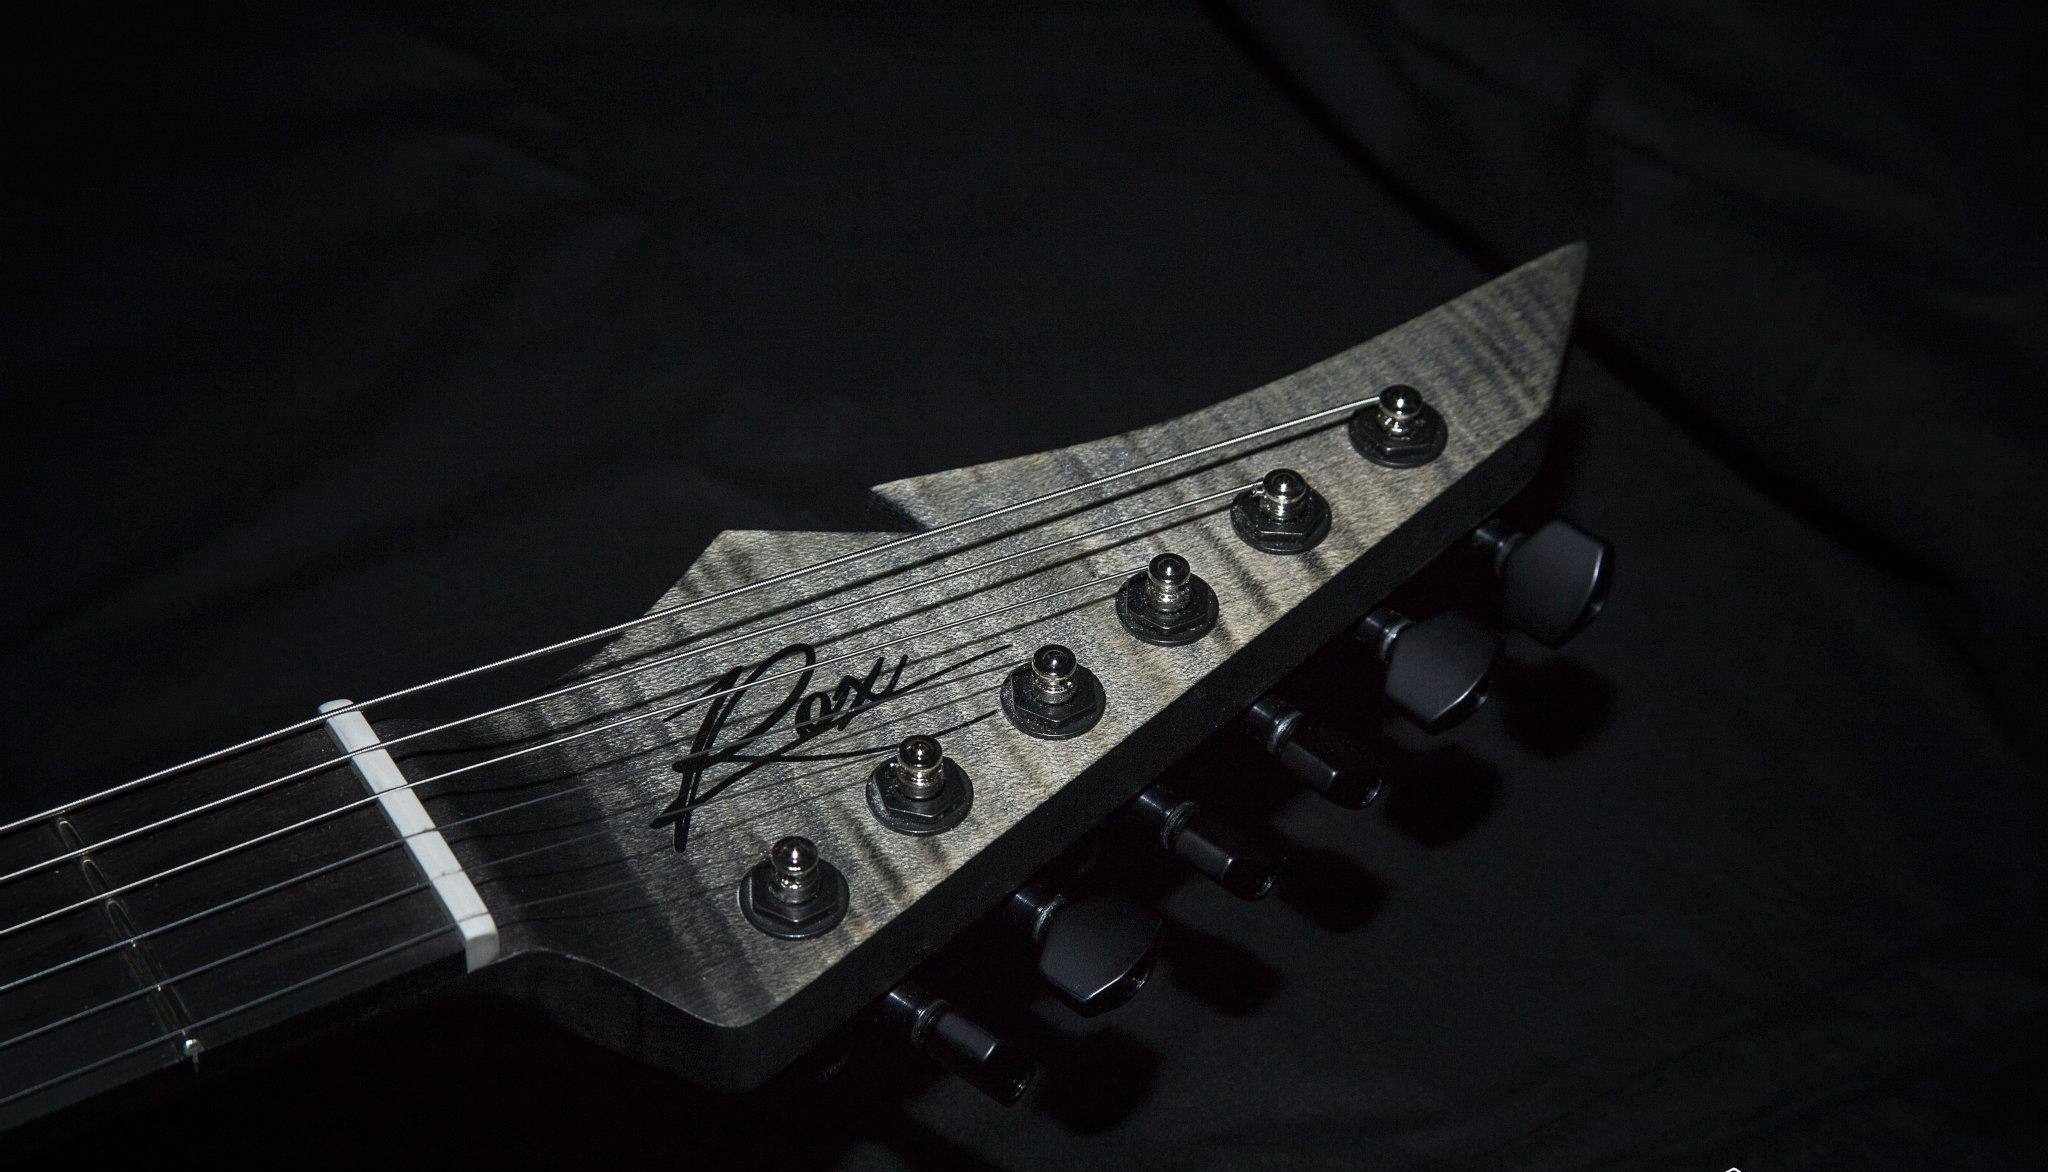 News · Rox Guitars